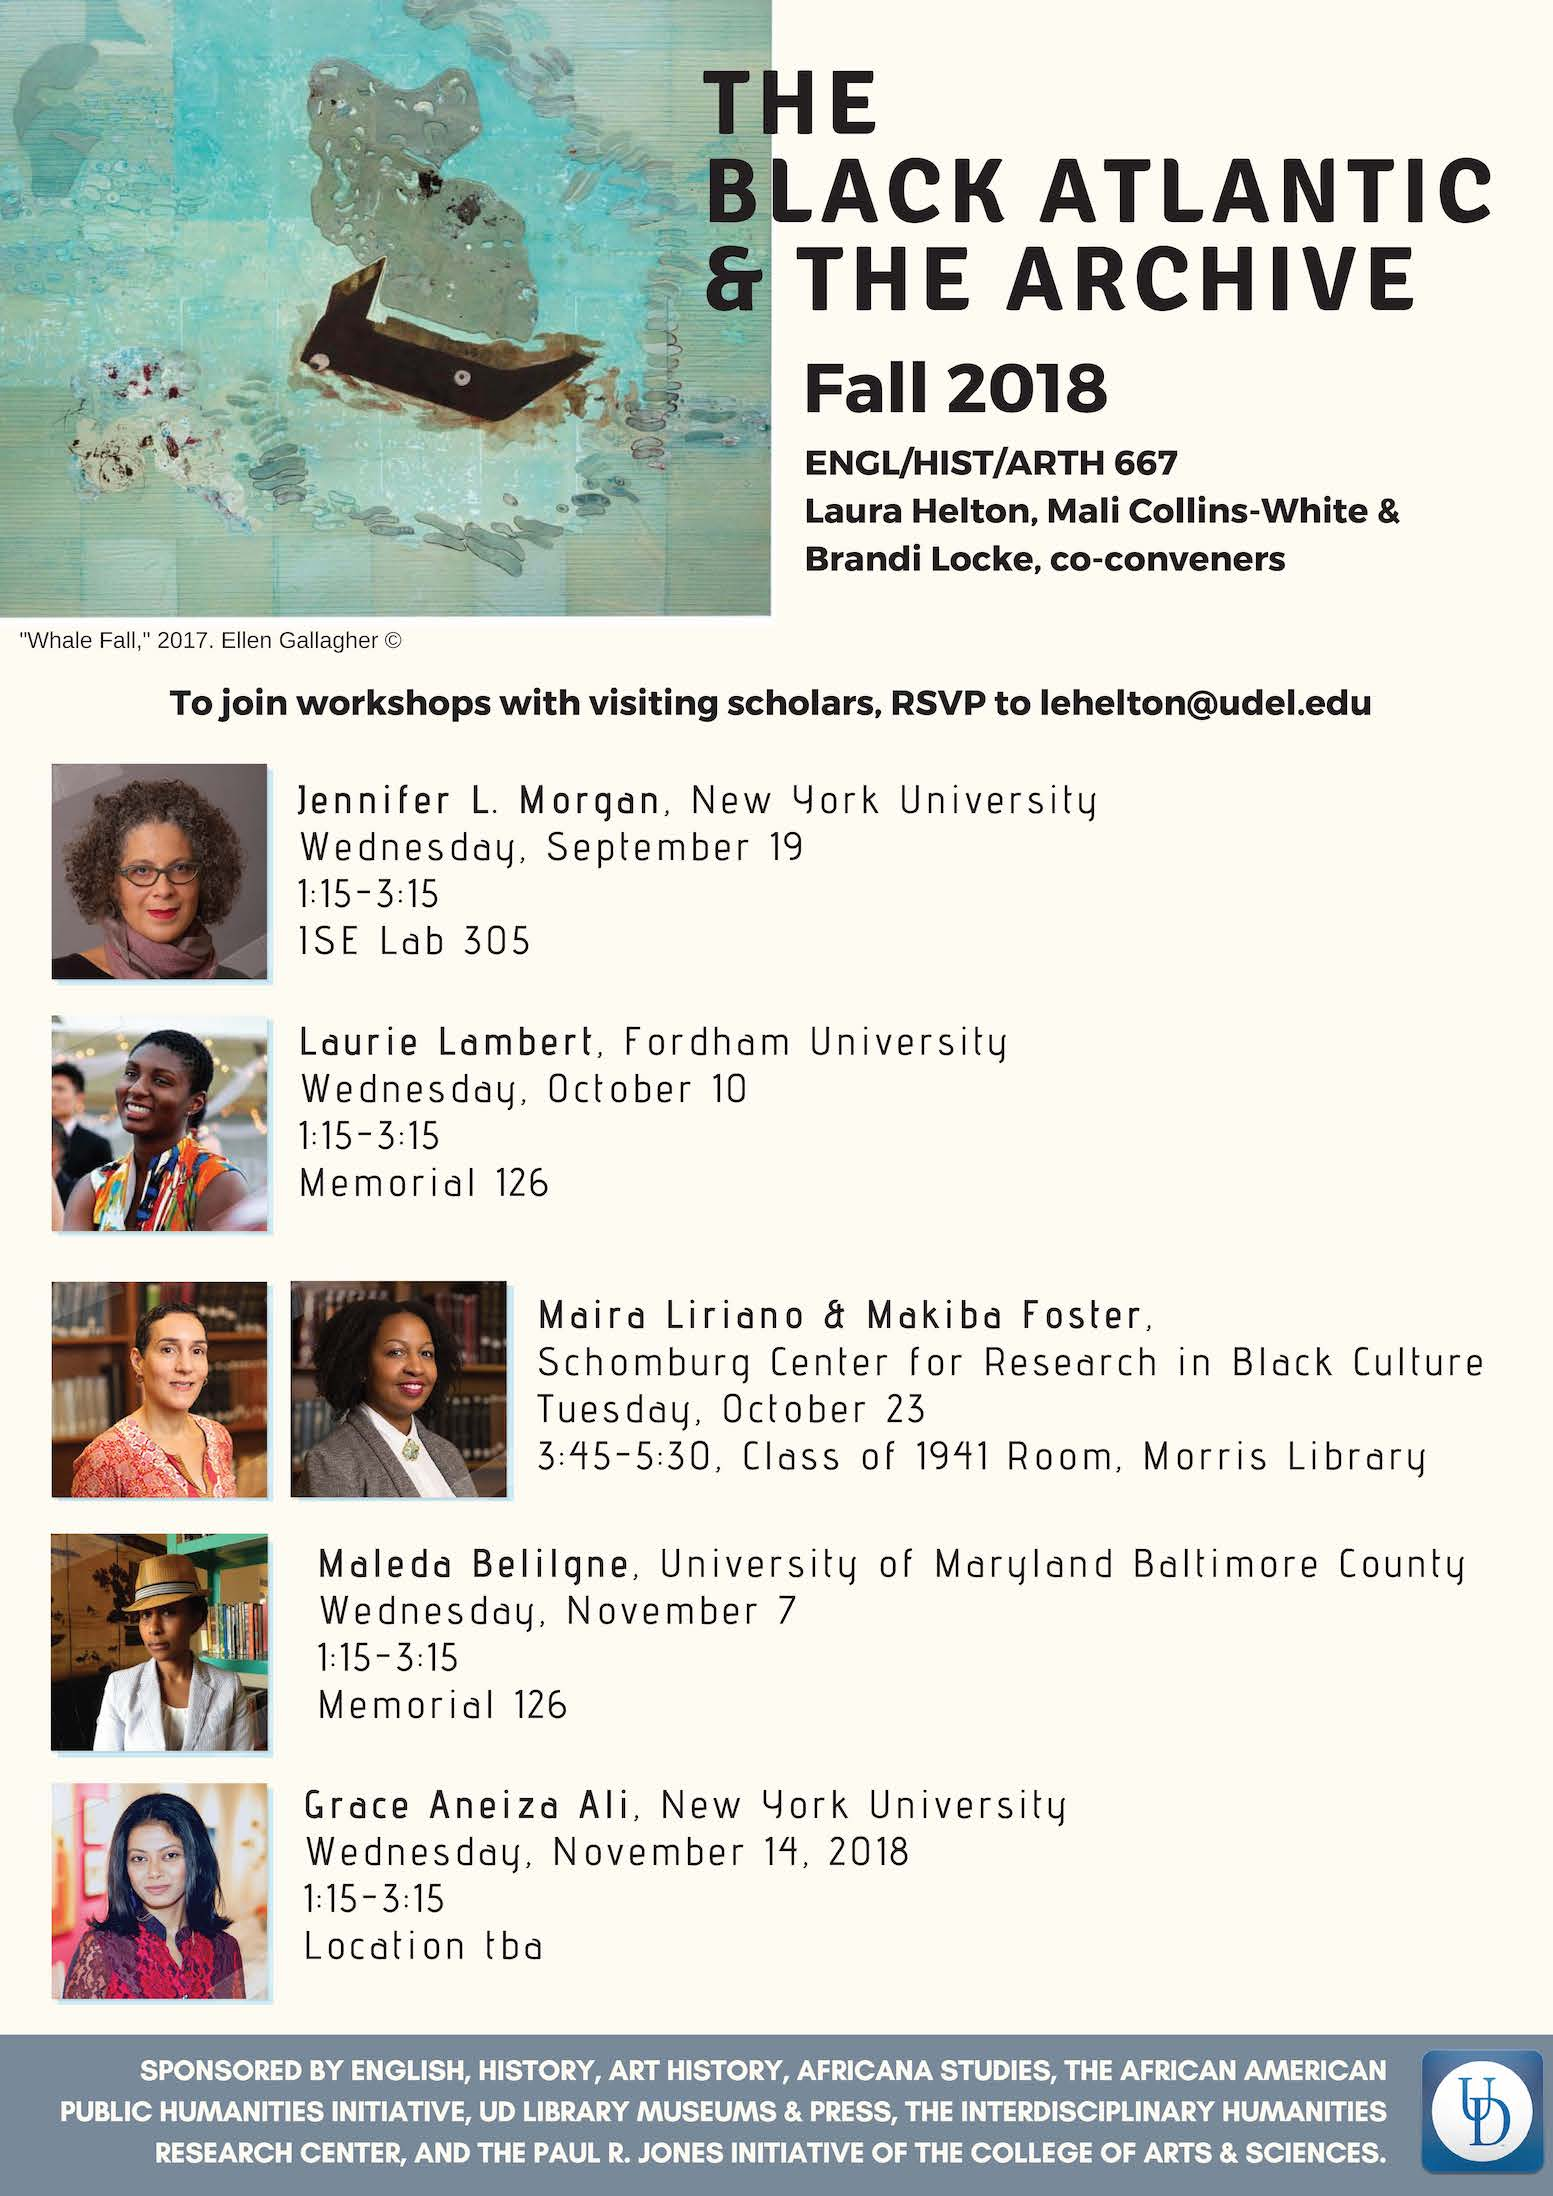 poster for the Fall 2018 Black Atlantic and the Archive Speaker Series at the University of Delaware